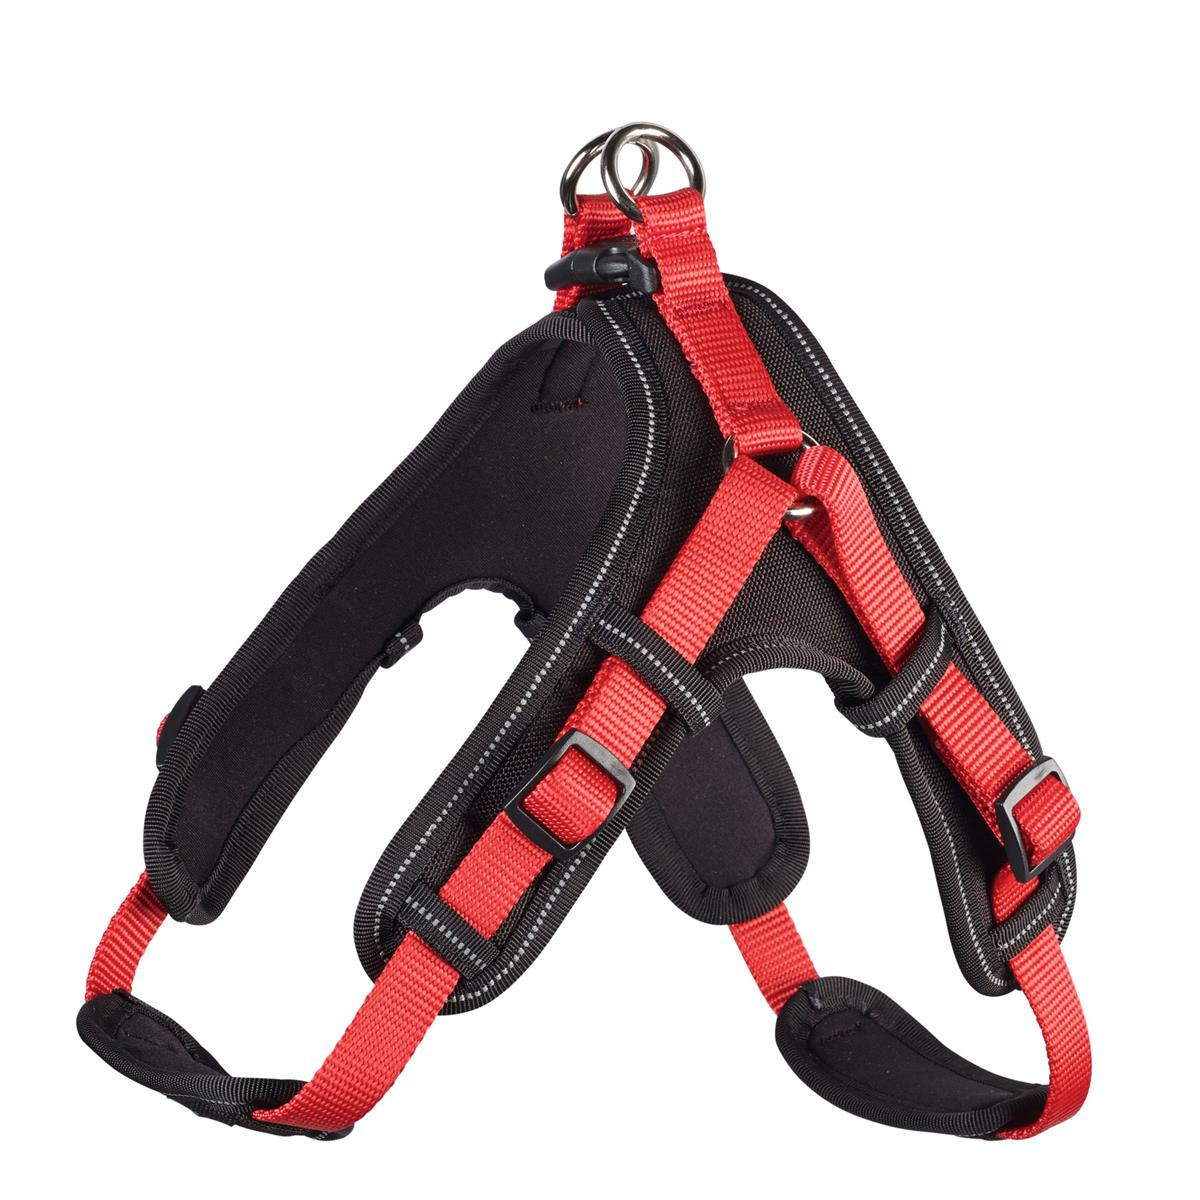 Harness Neoprene Vario Quick L 67-80 cm, 25 mm red